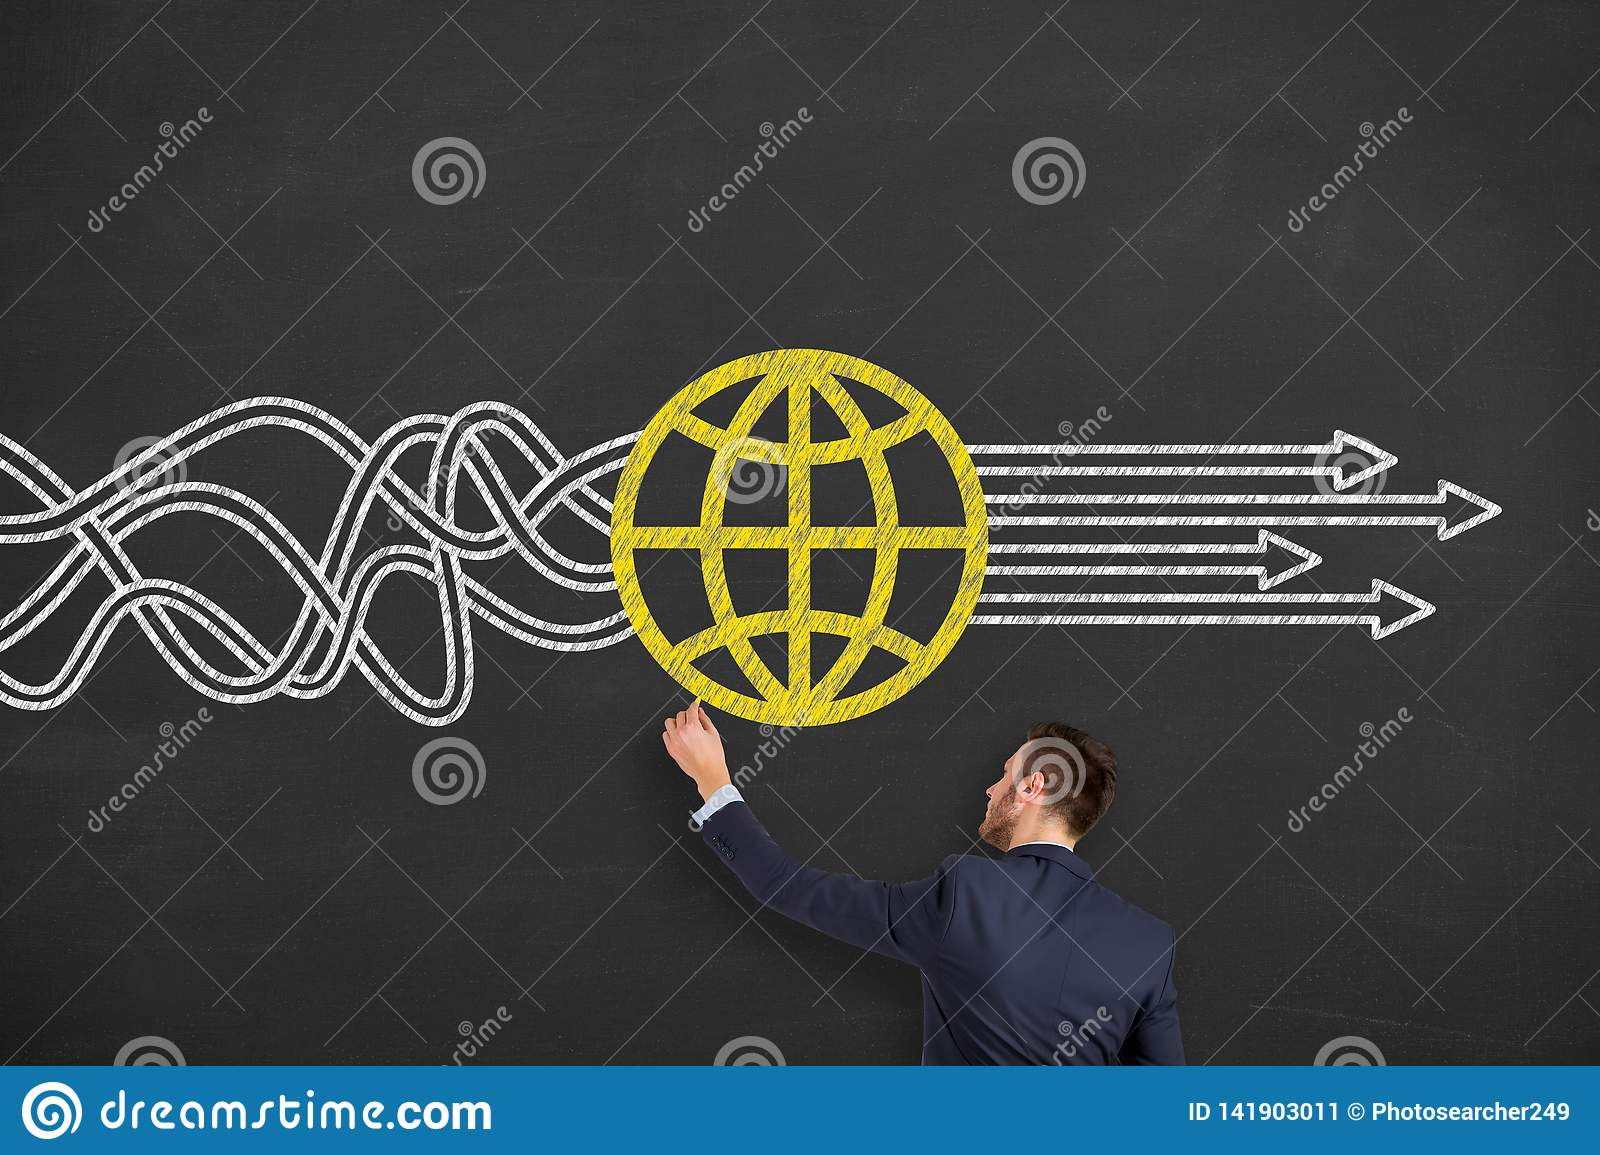 Global Business Solution Concepts on Chalkboard Background